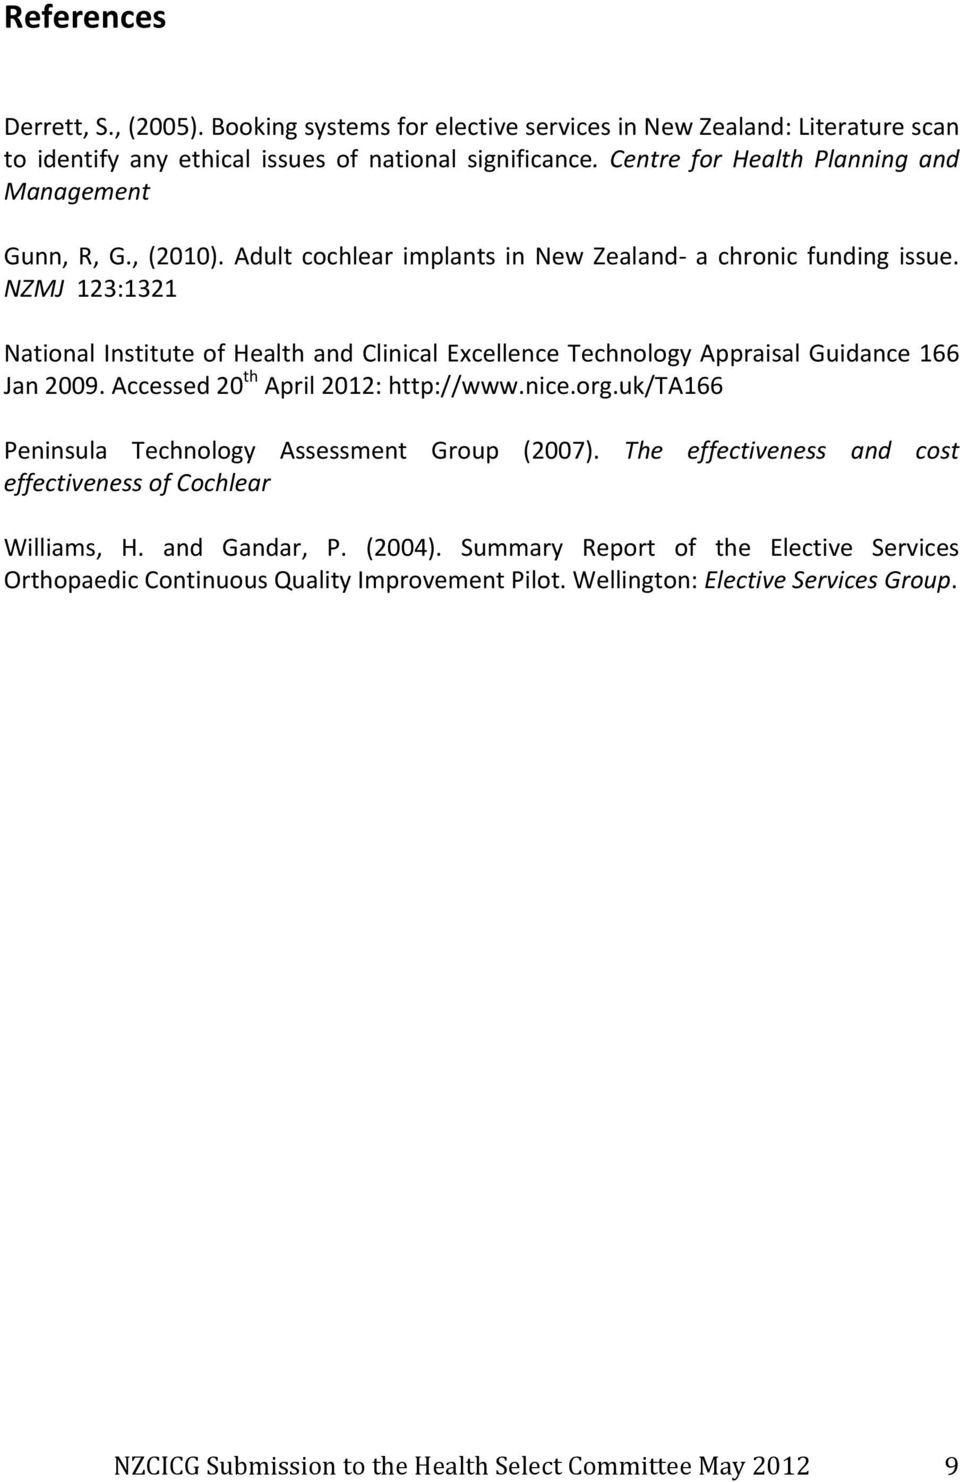 NZMJ 123:1321 National Institute of Health and Clinical Excellence Technology Appraisal Guidance 166 Jan 2009. Accessed 20 th April 2012: http://www.nice.org.